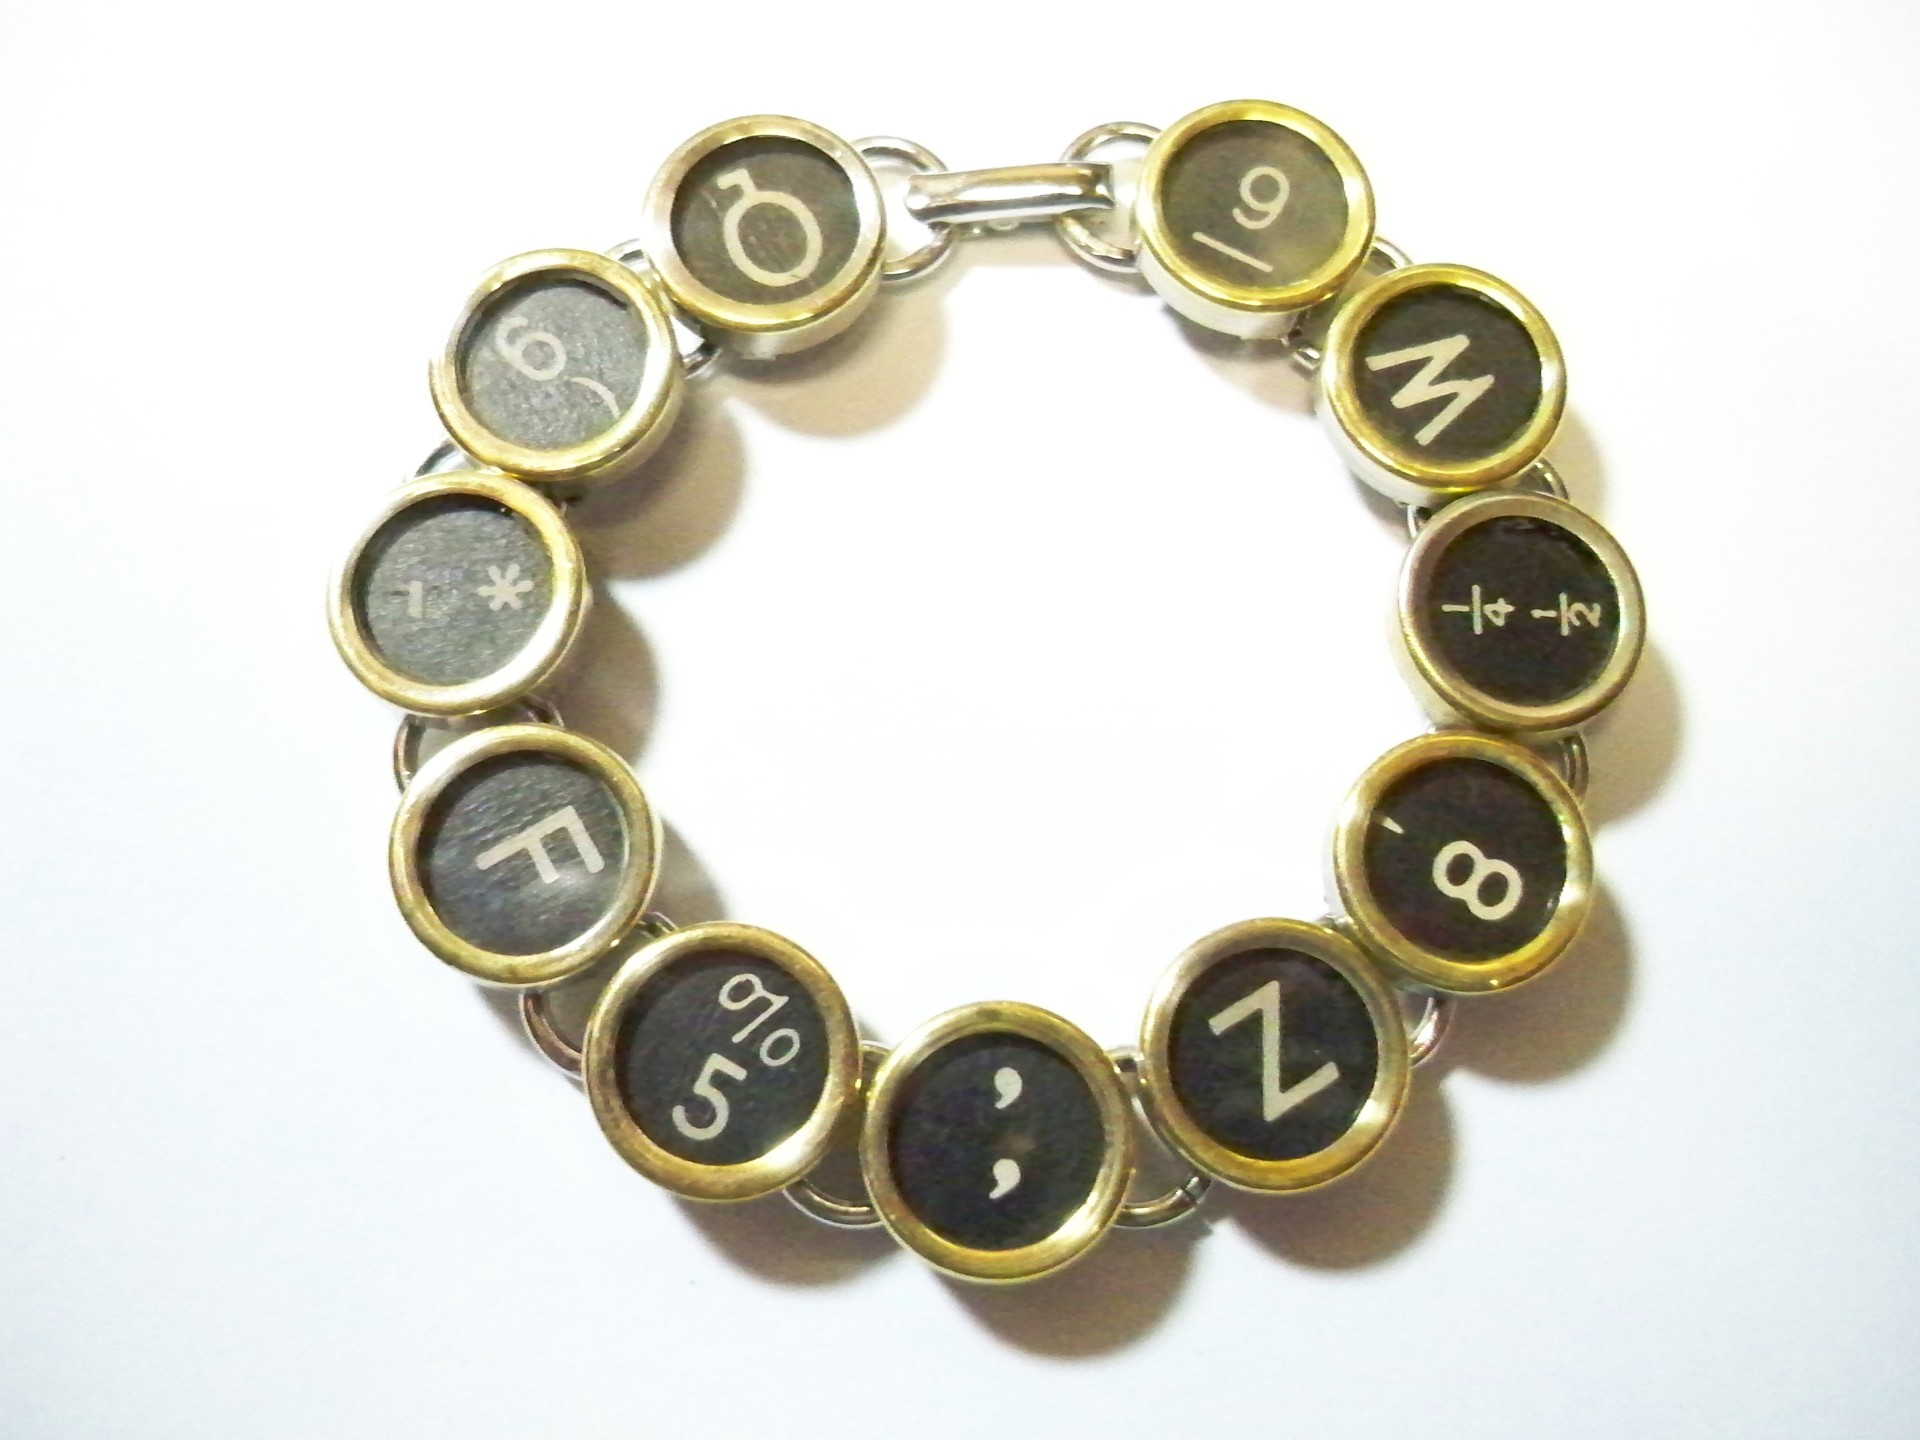 typewriter keys repurposed jewelry